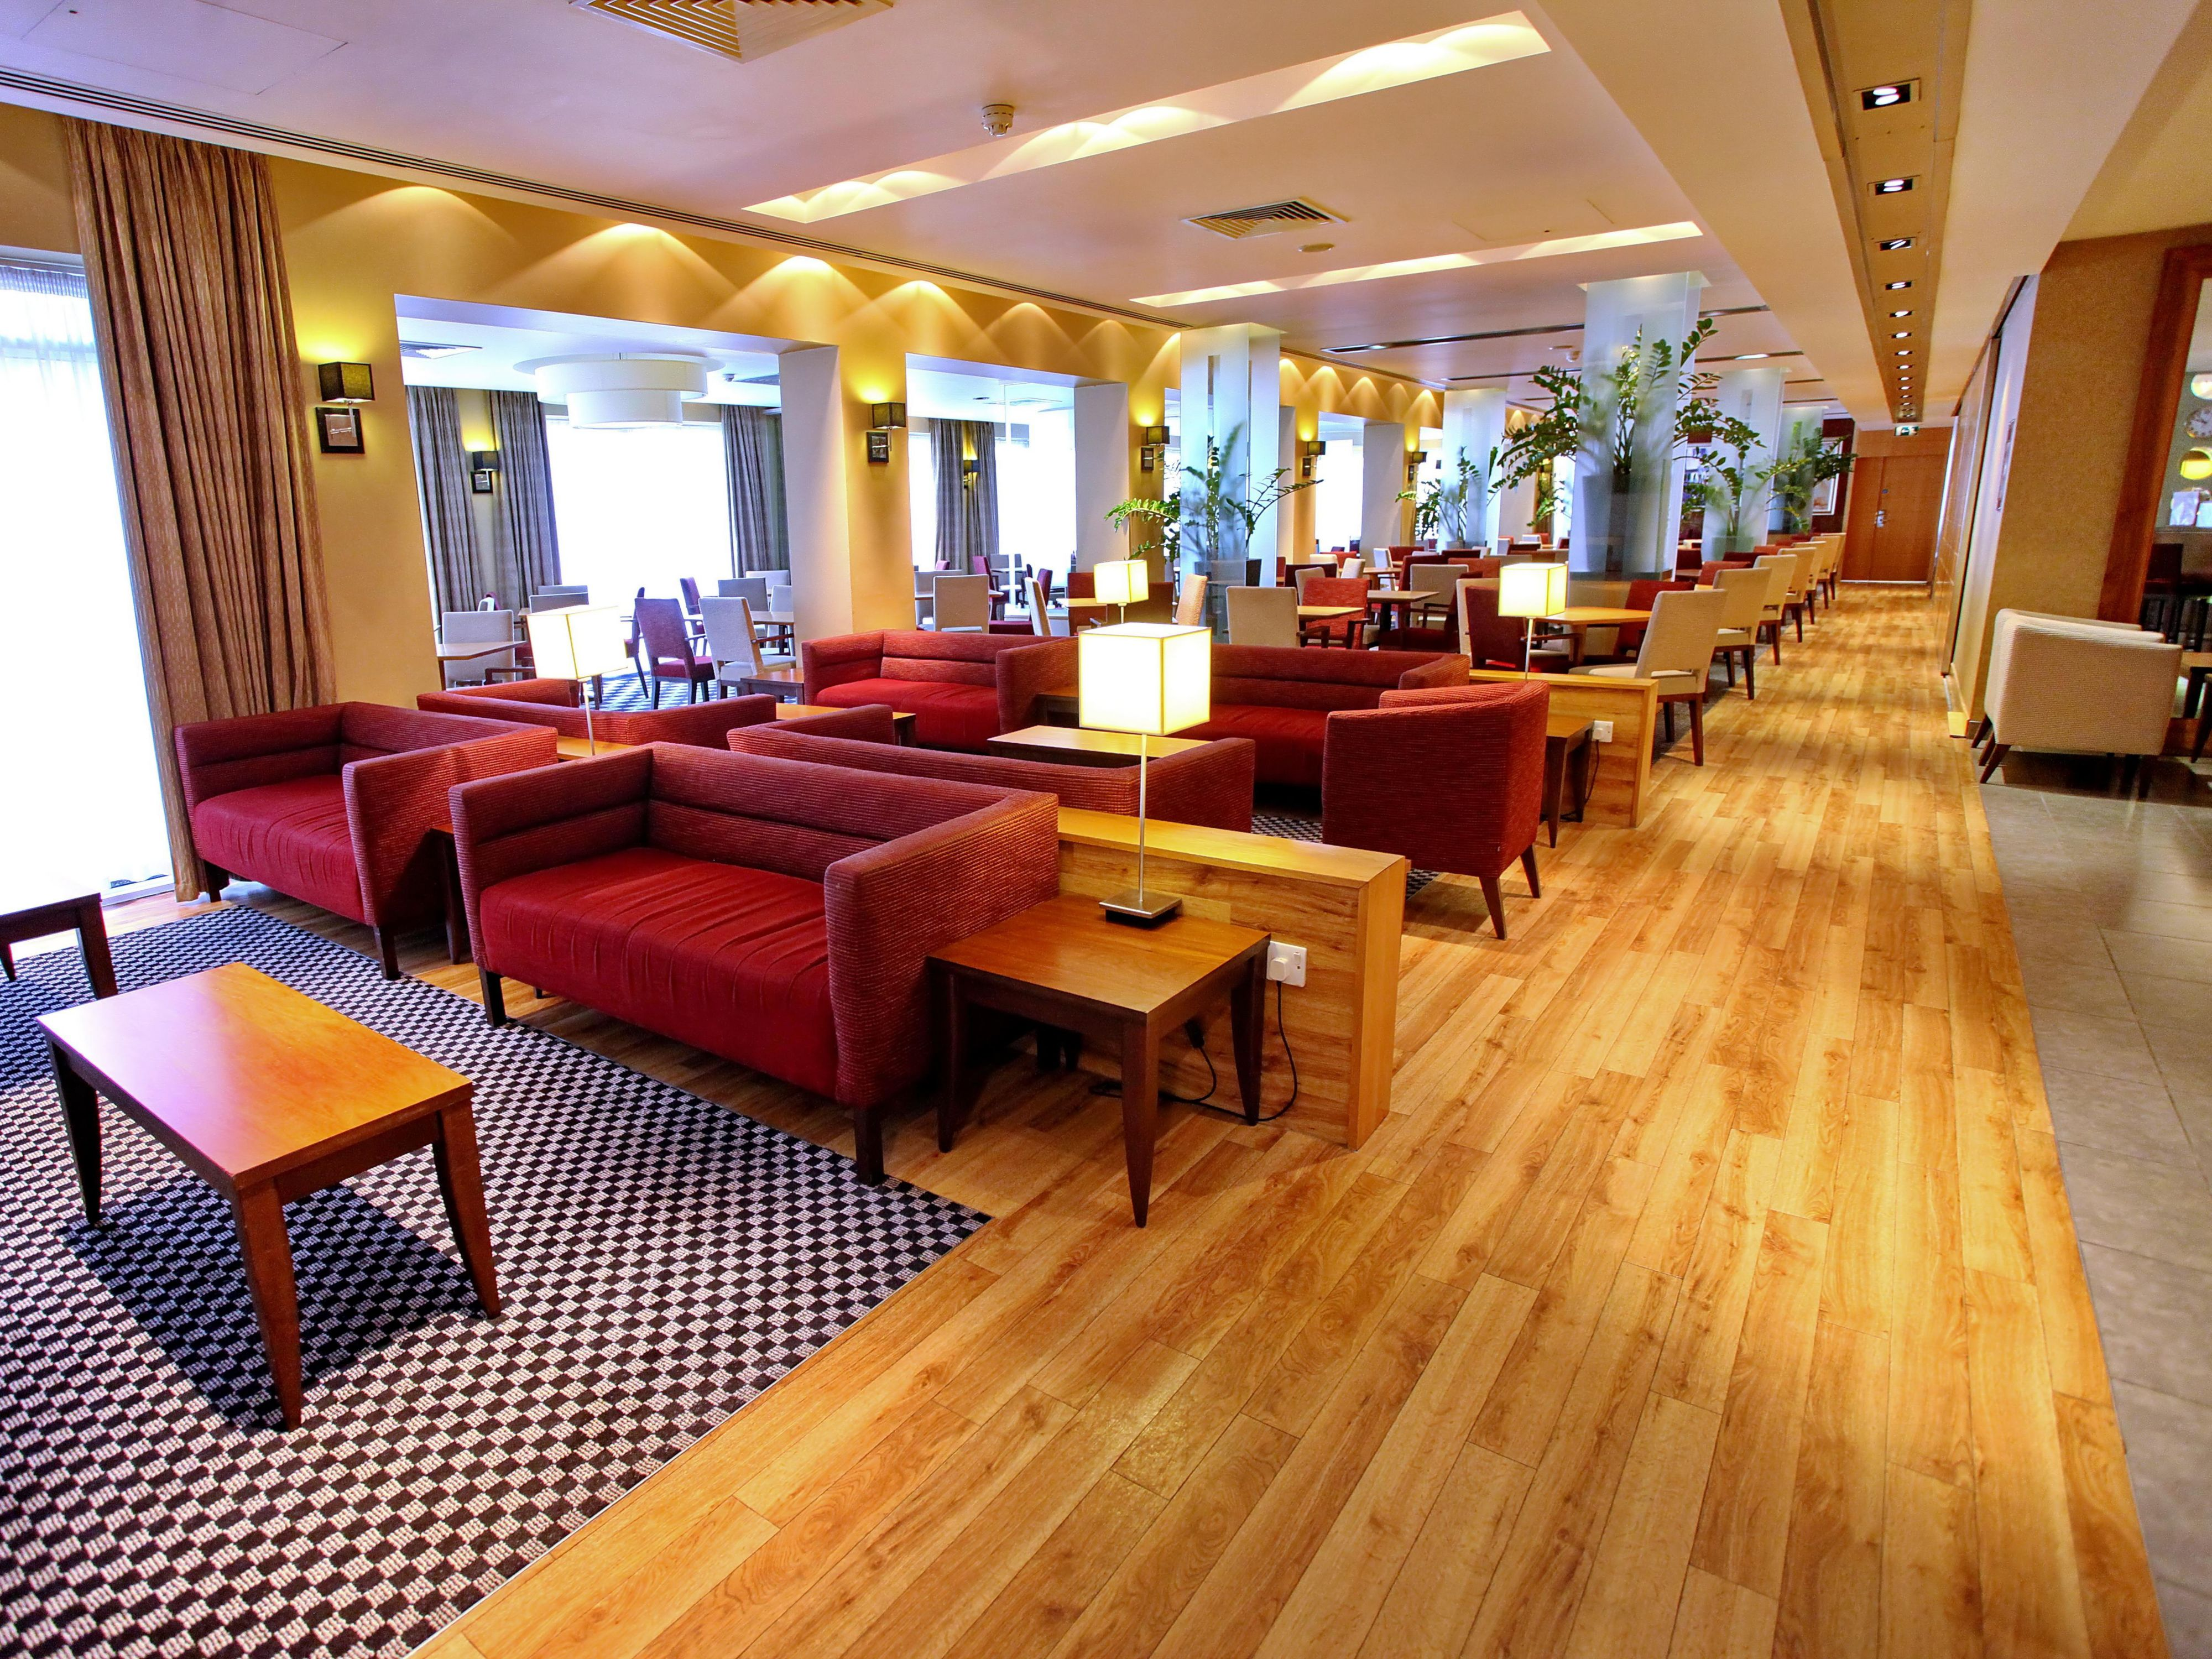 Caprice Restaurant at Holiday Inn Express Southampton M27 Jct7